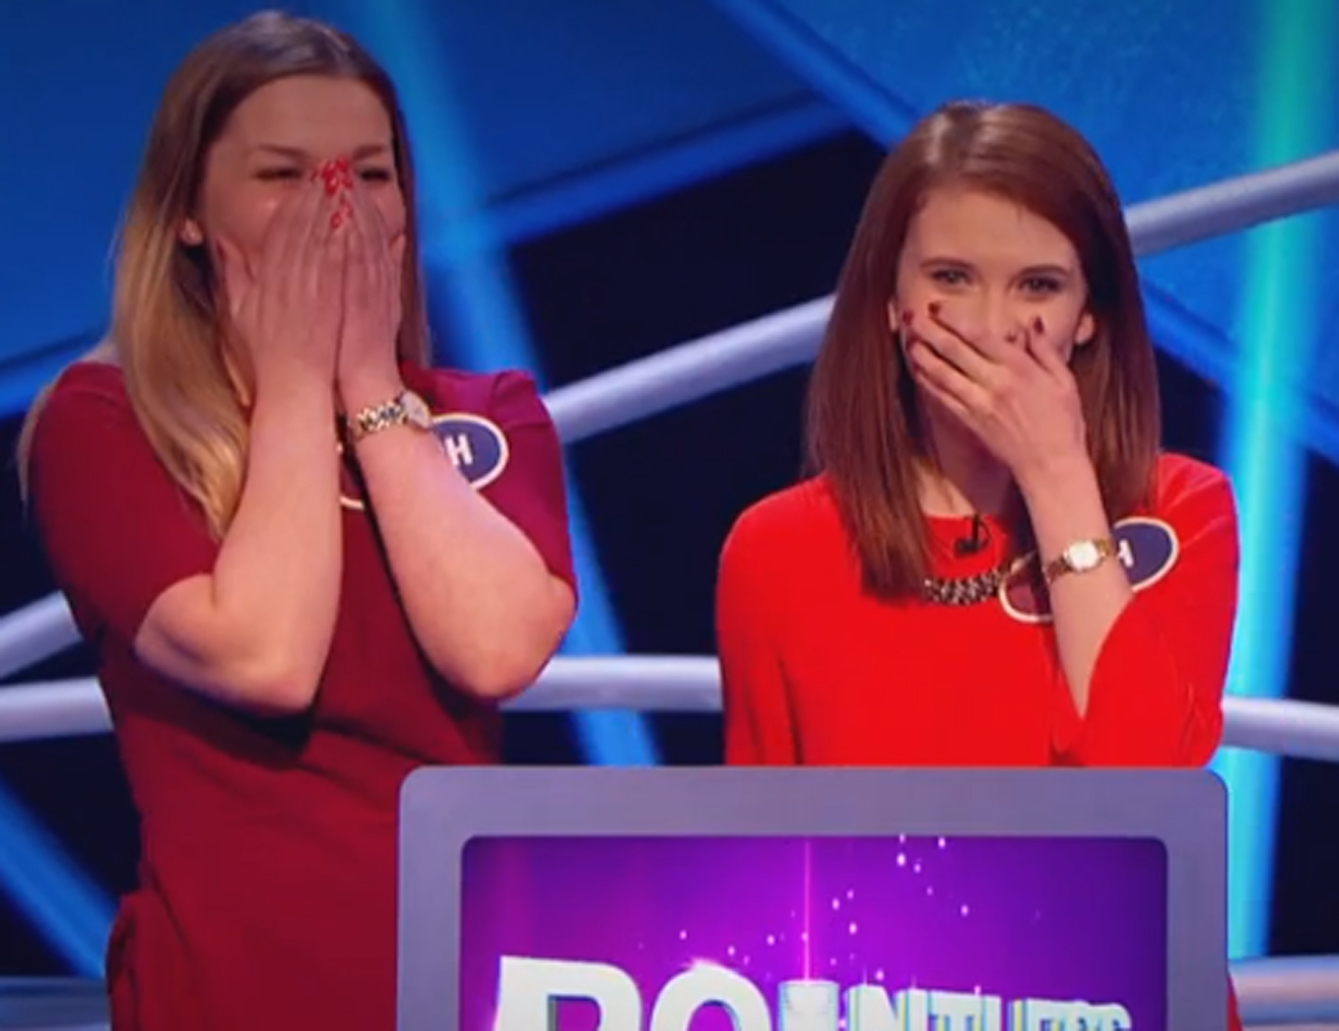 Stephanie, left, and Beth, right, won £11,250 on the popular gameshow.